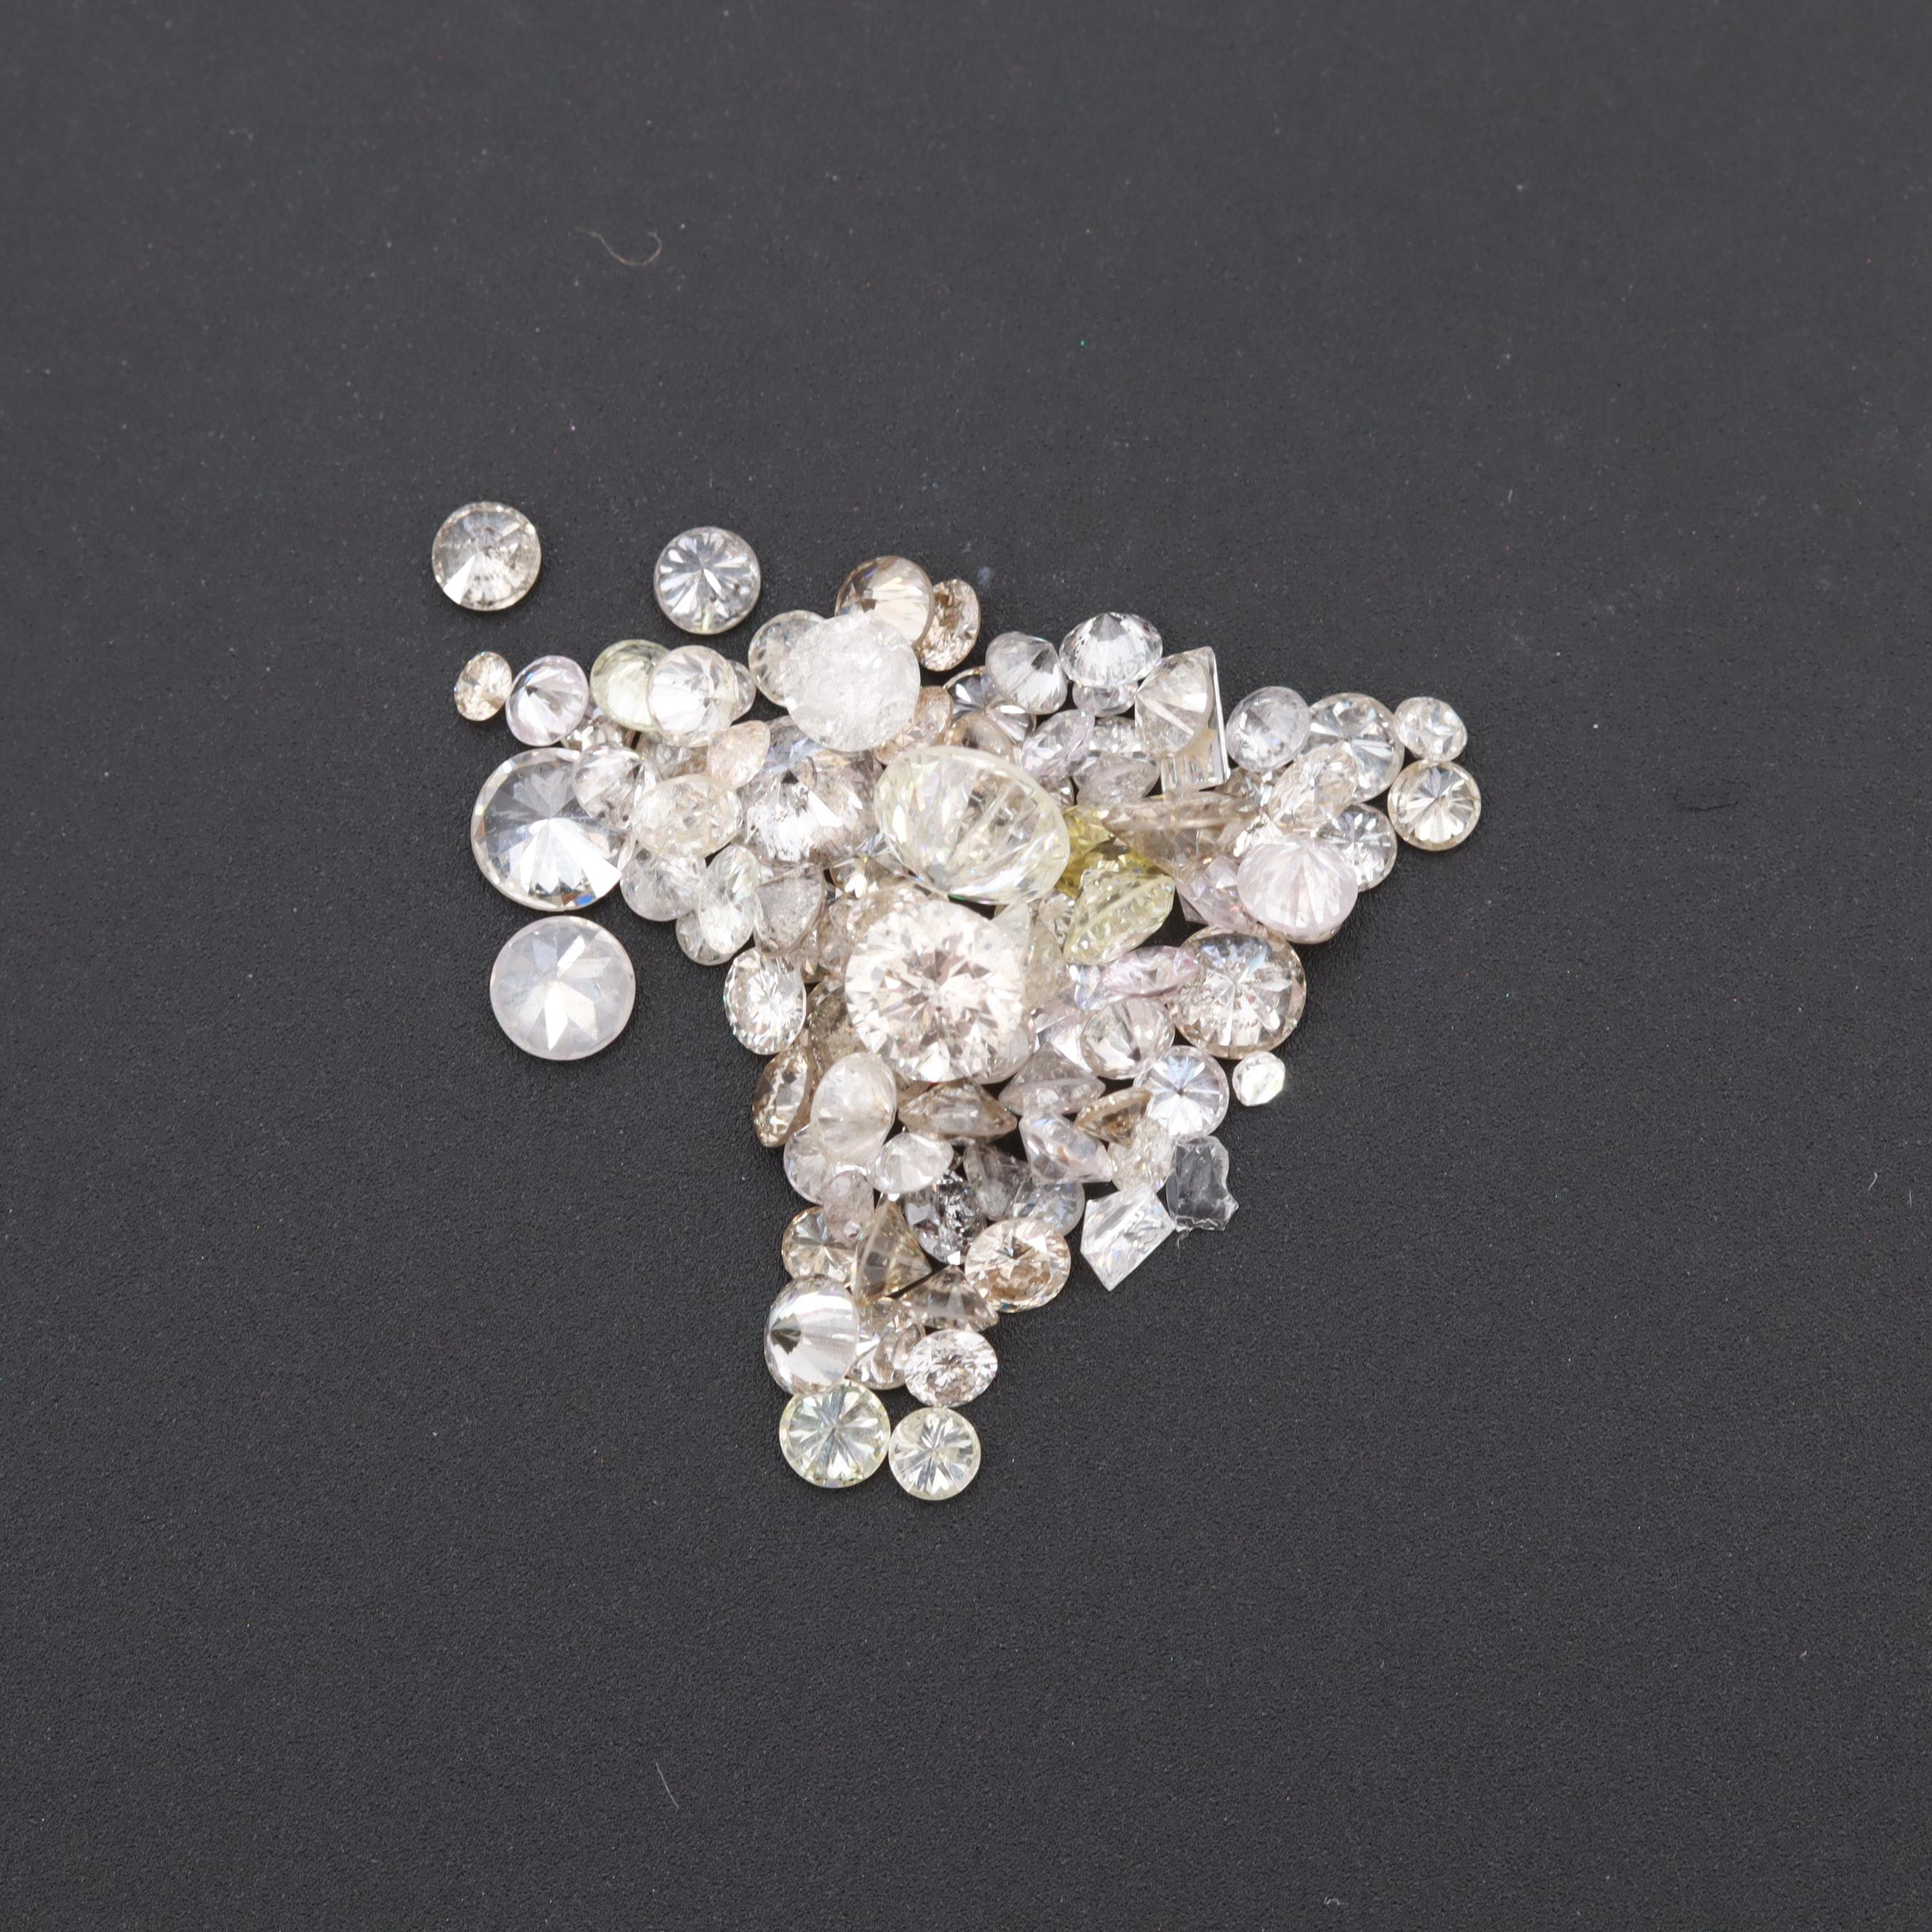 Loose 3.39 CTW Diamond Assortment